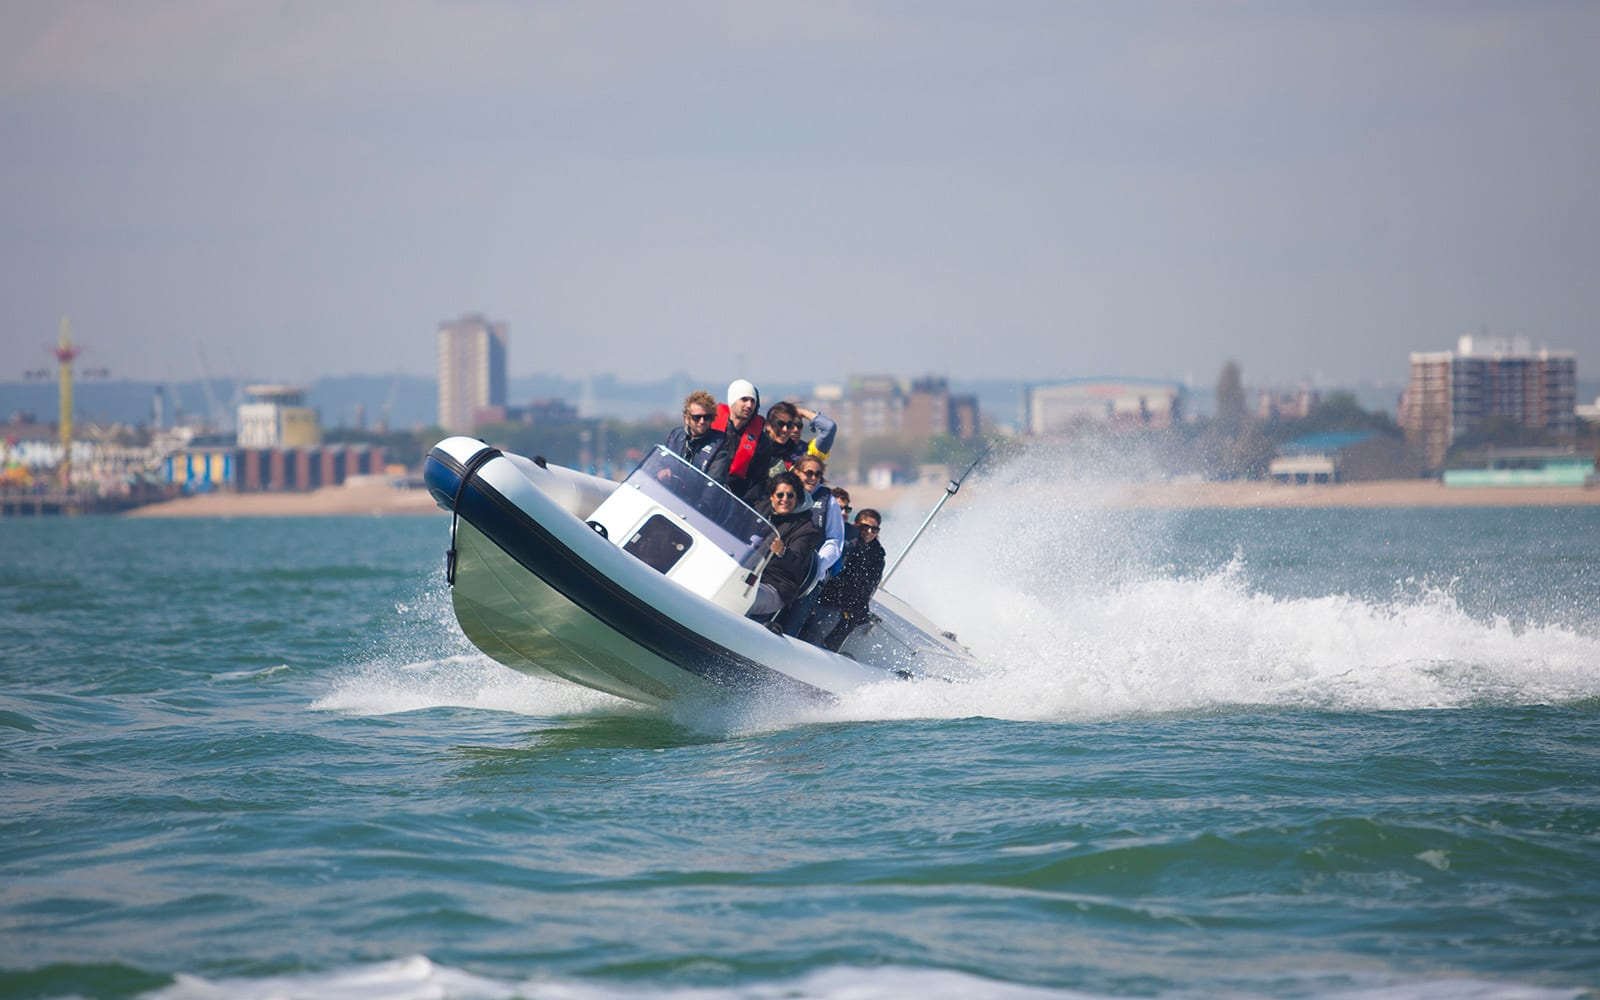 Travel in style by speed boat to your party celebration destination - Solent Forts